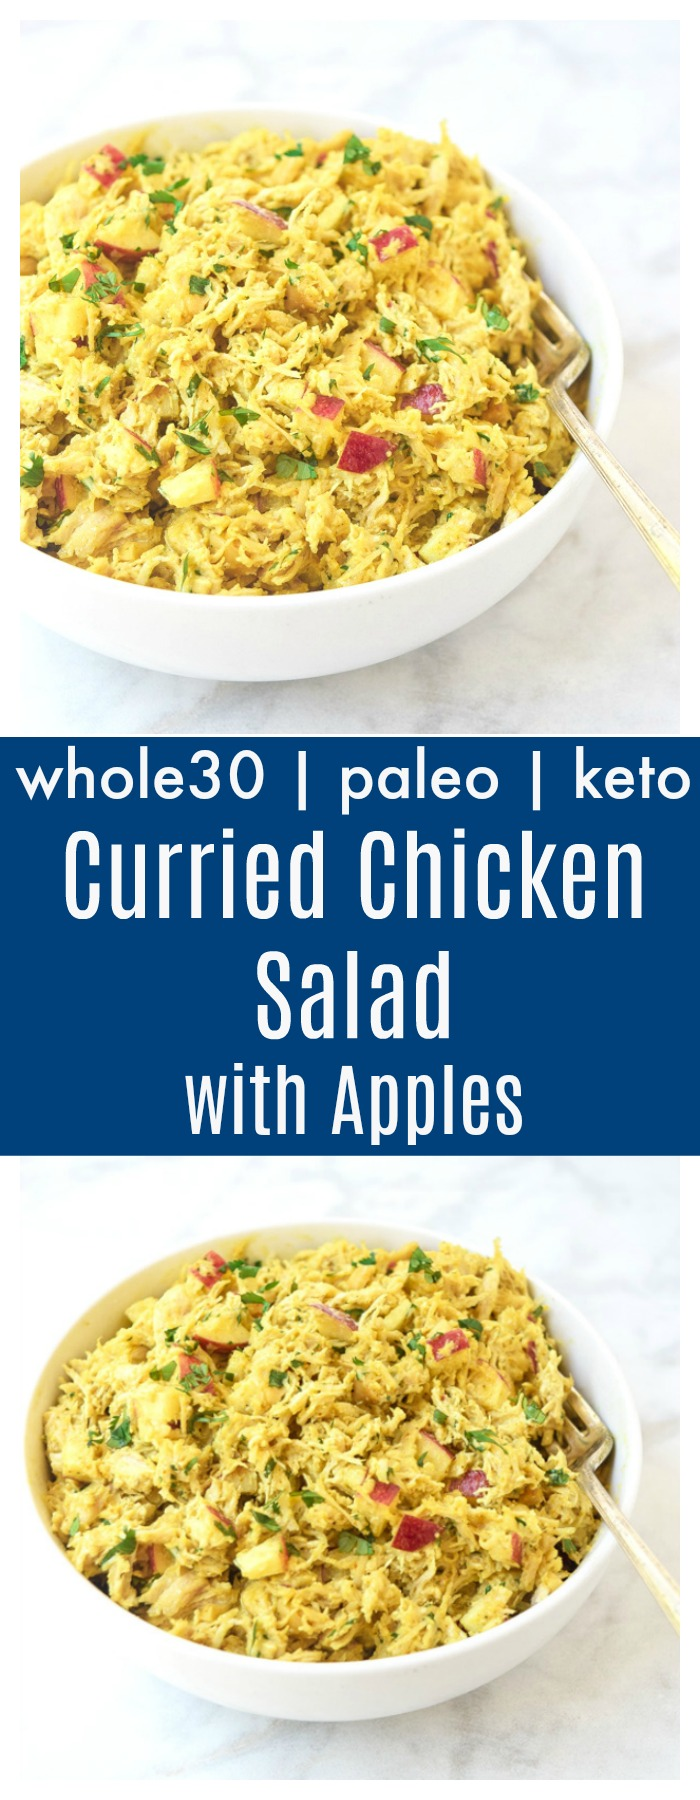 whole30 curried chicken salad with apples